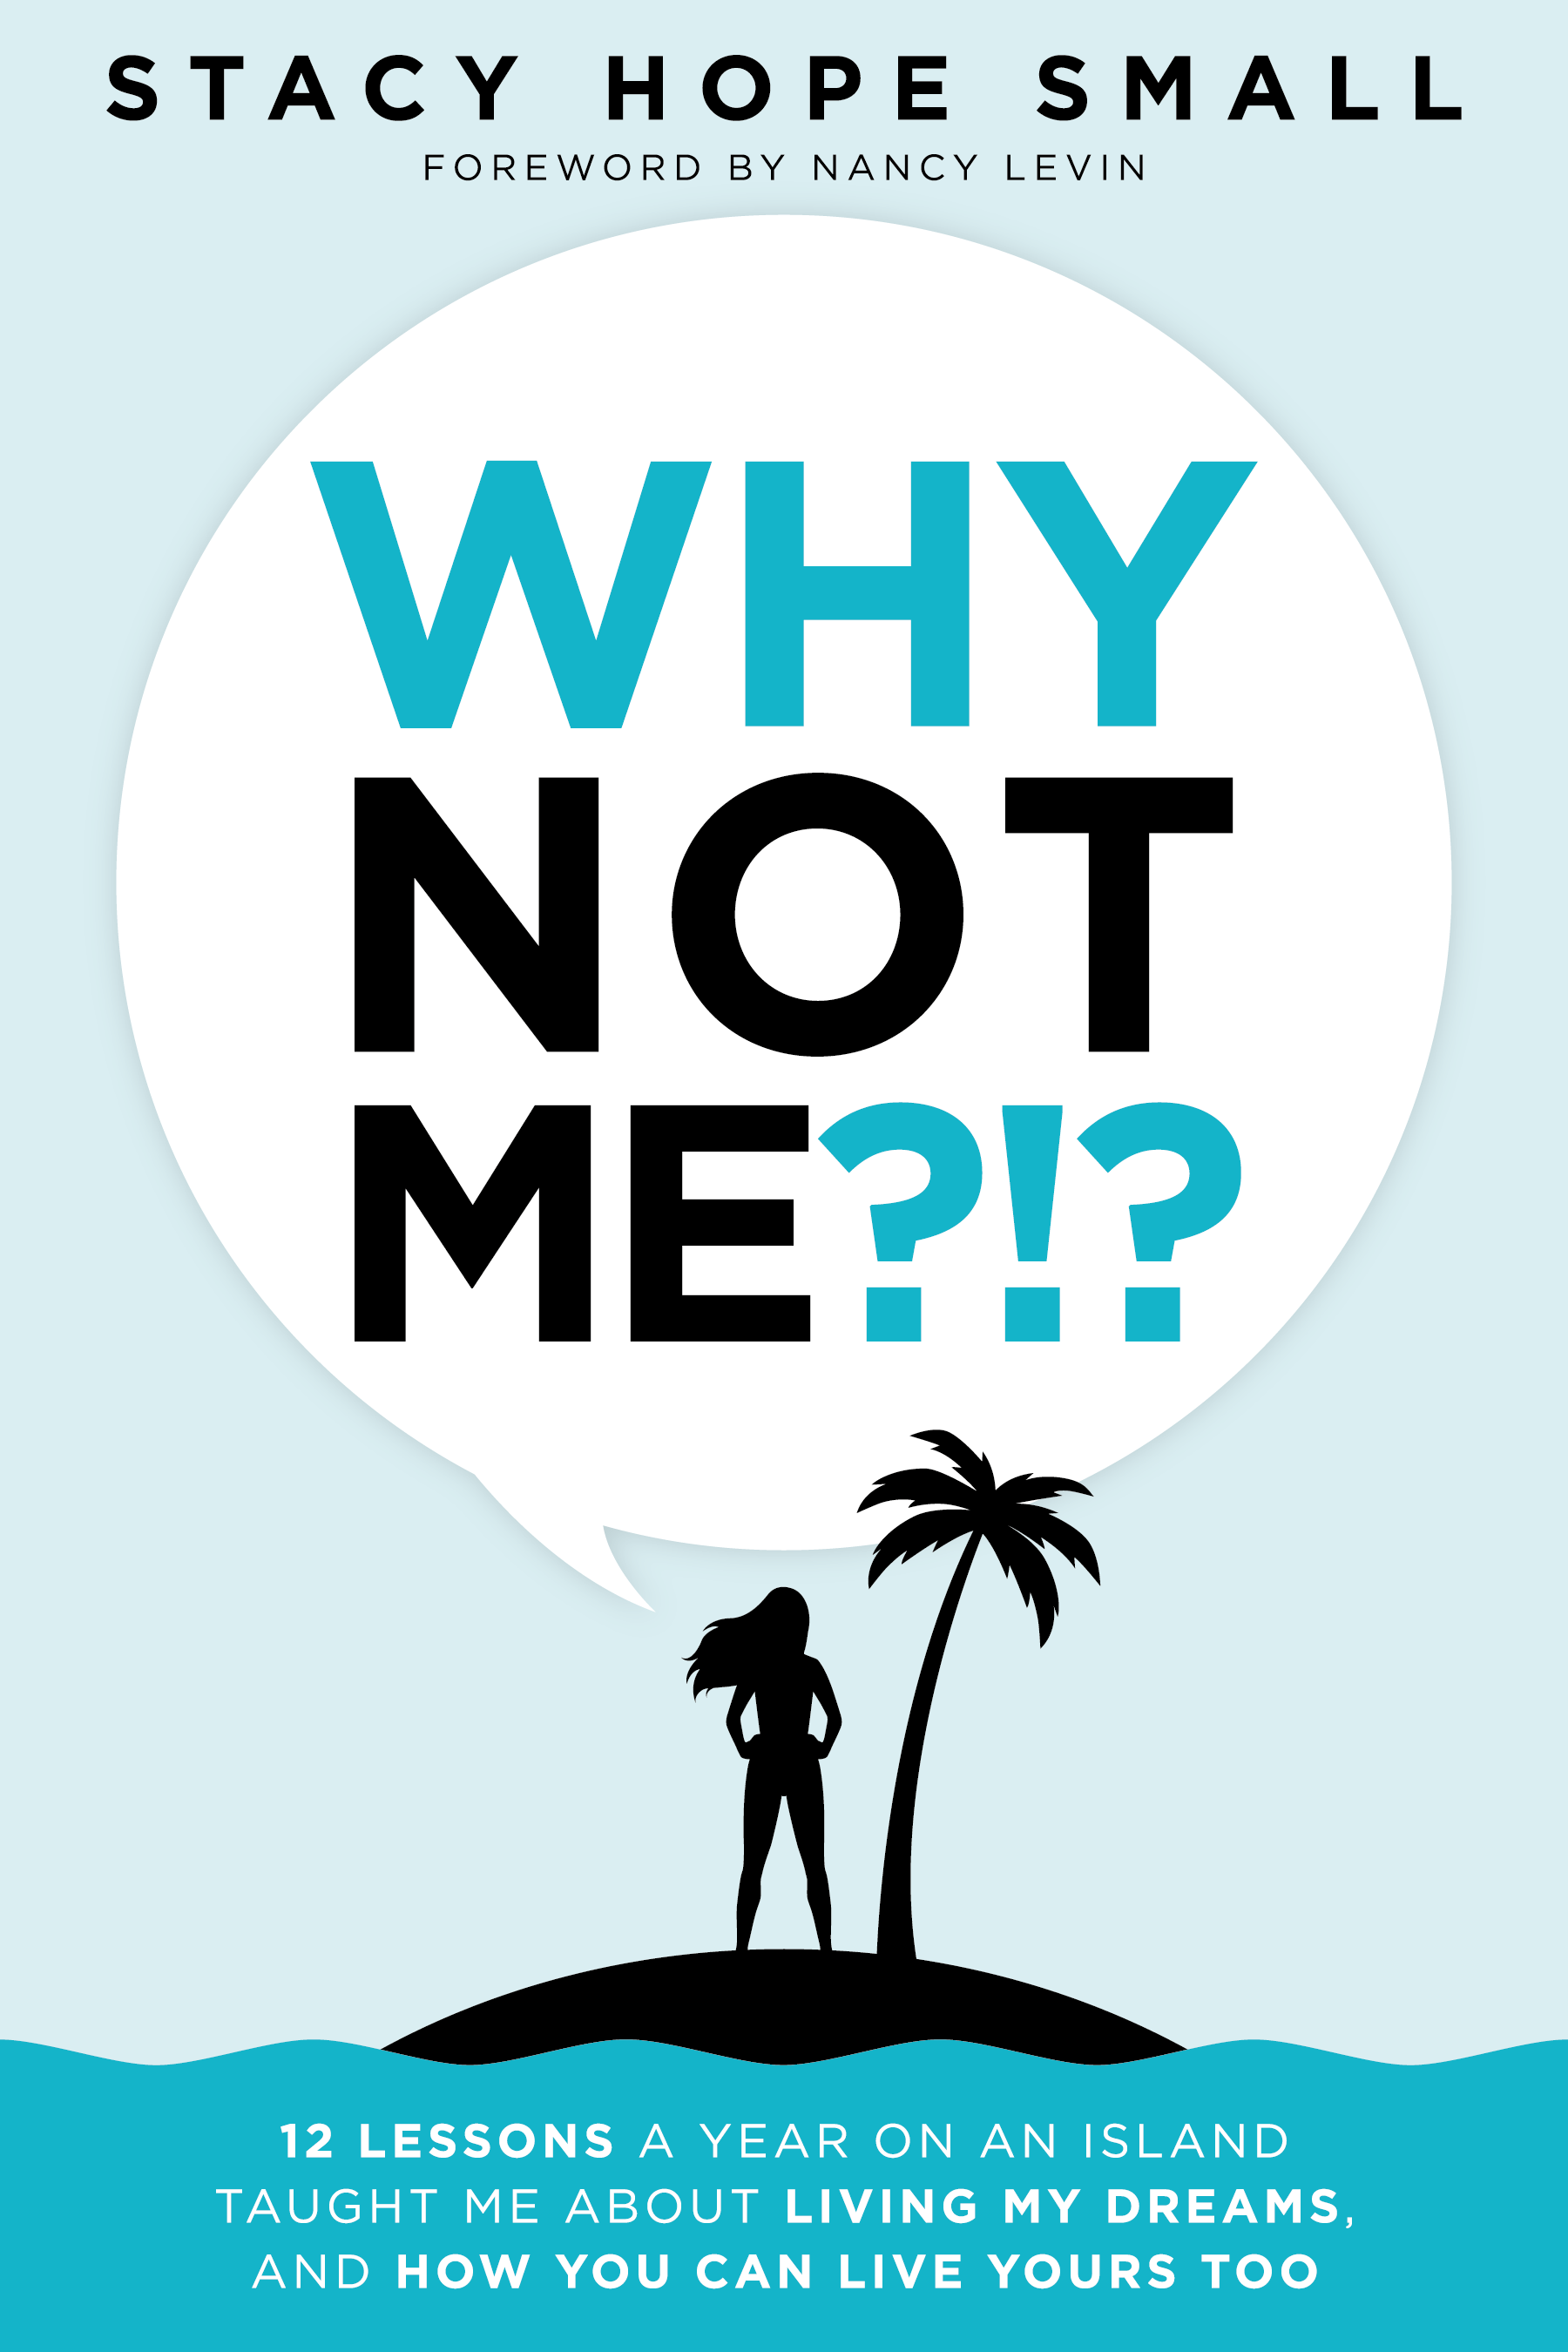 Why NOT You Designing the WHY NOT ME book cover?